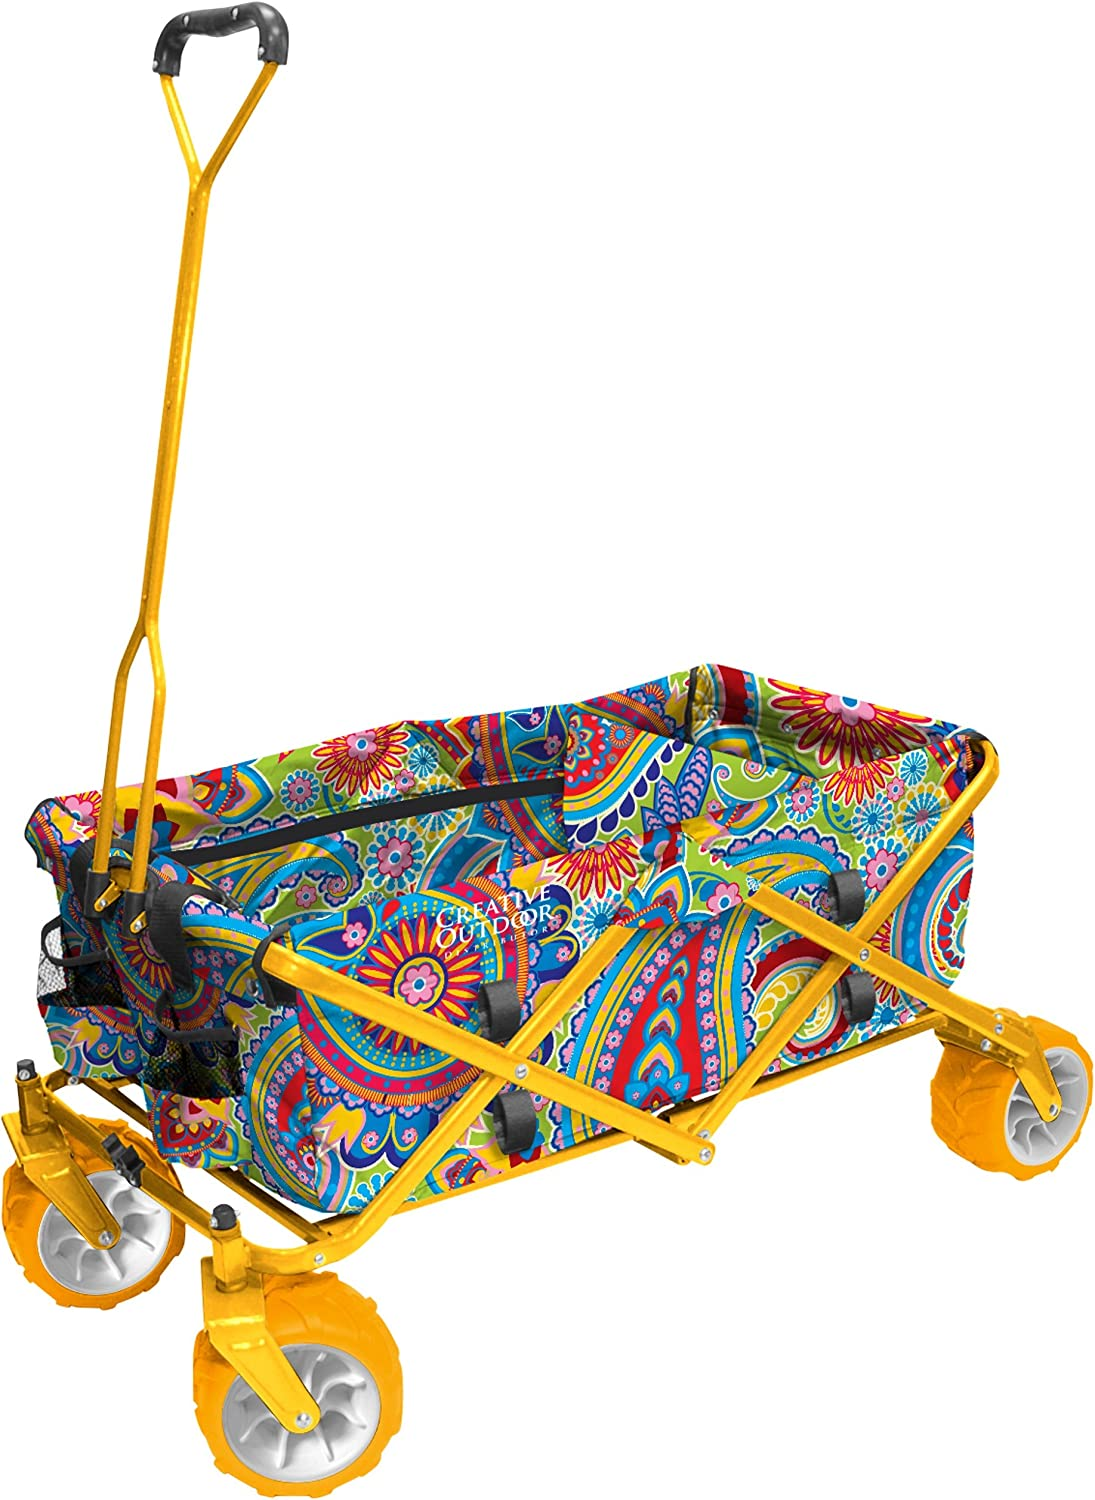 Creative Outdoor Collapsible Folding Wagon Cart for Kids and Pets | All Terrain | Beach Park Garden Sports & Camping | Paisley Yellow